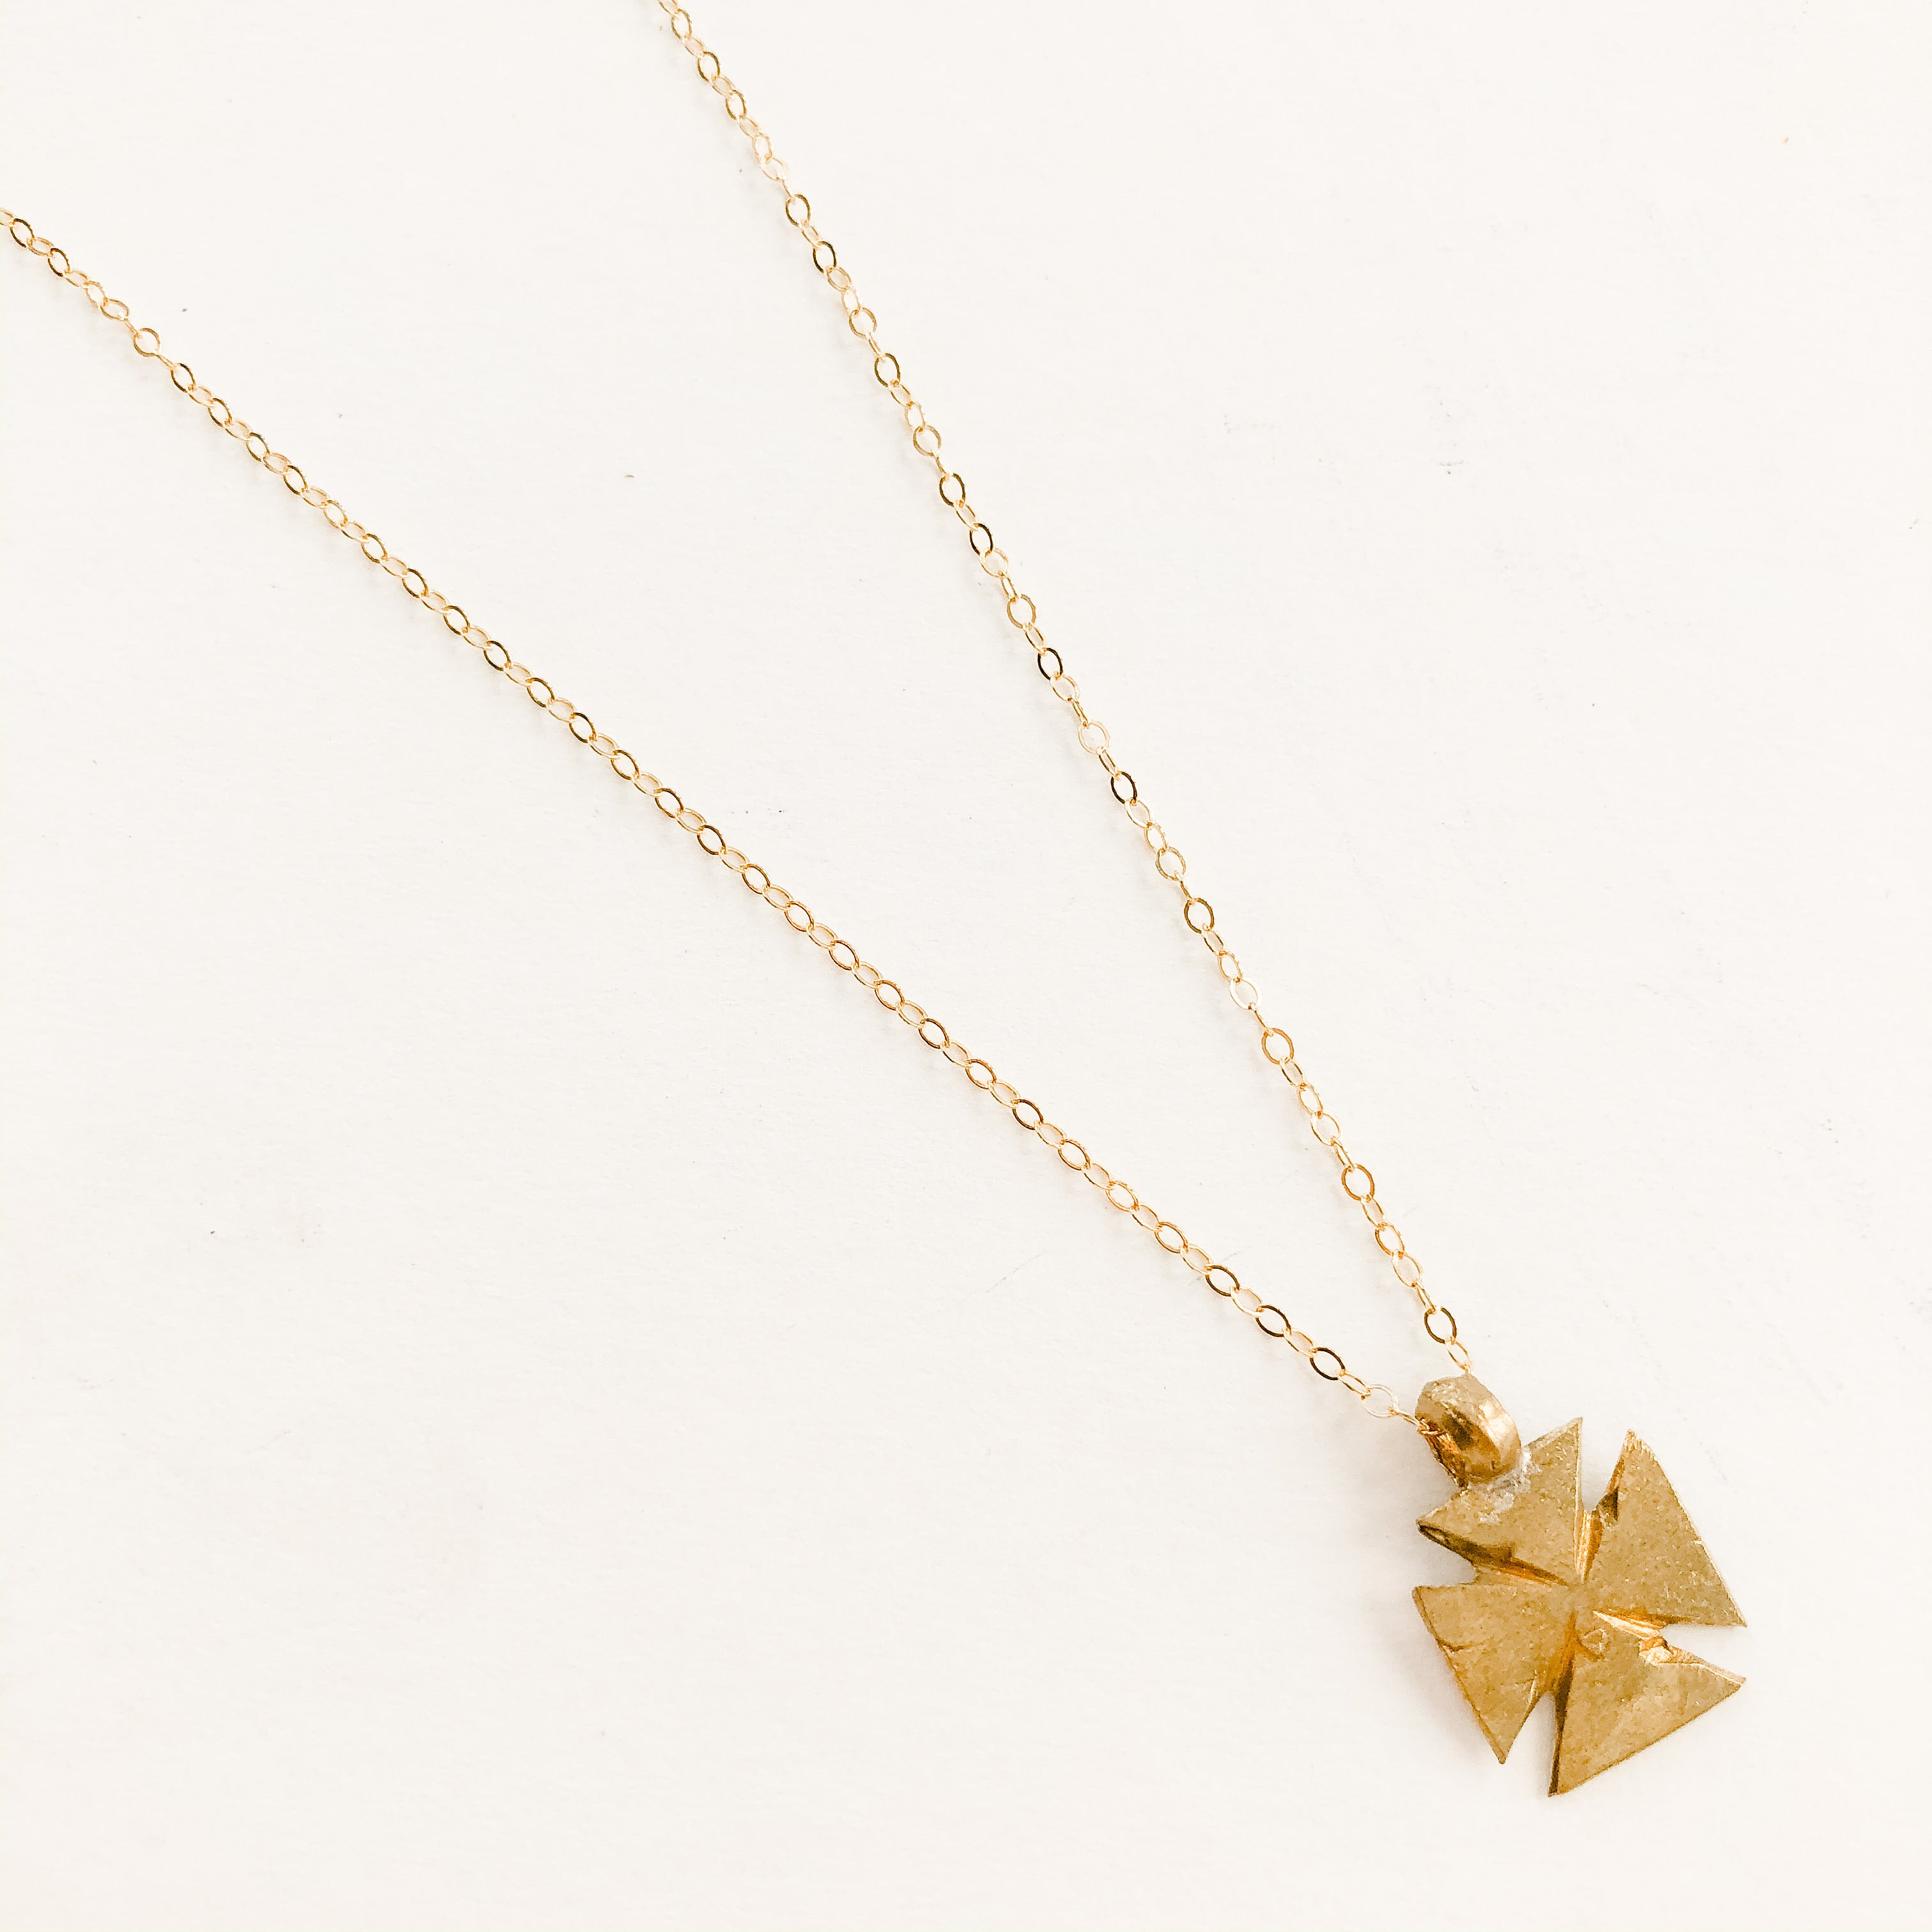 Finer Things Necklace - Simple Brass Cross Pendant | Chain